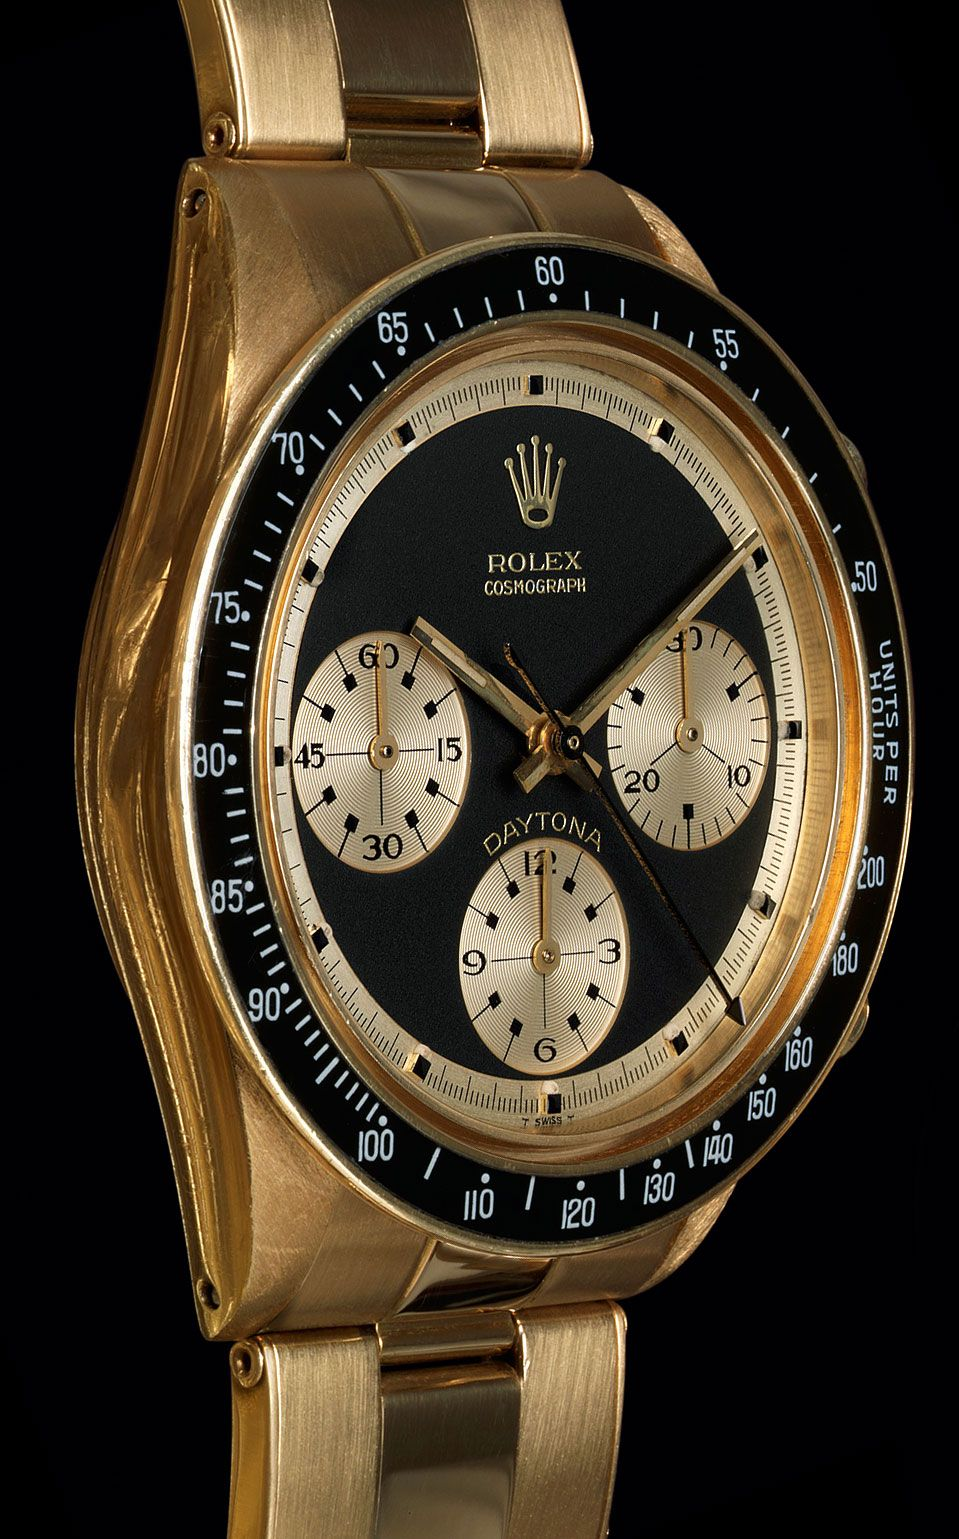 ce4c4518e9b Welcome To RolexMagazine.com...Home Of Jake's Rolex World Magazine..Optimized  for iPad and iPhone: The Complete History Of The Rolex Daytona Cosmograph